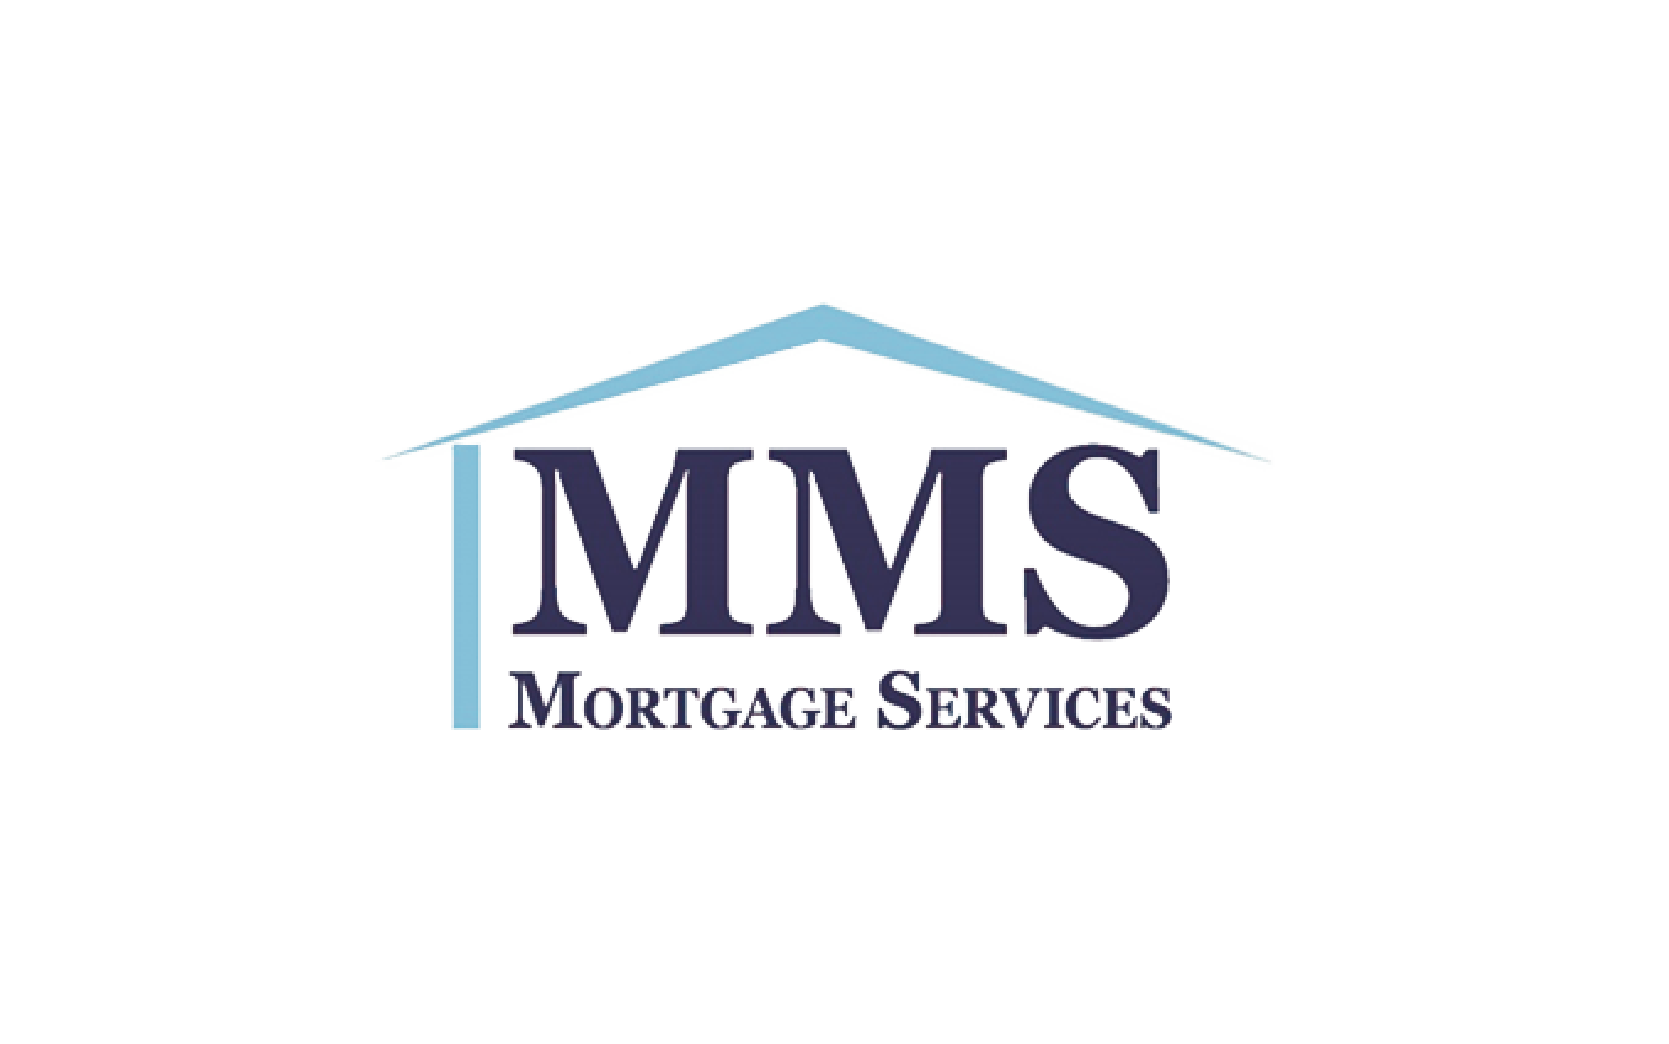 Member Mortgage Services